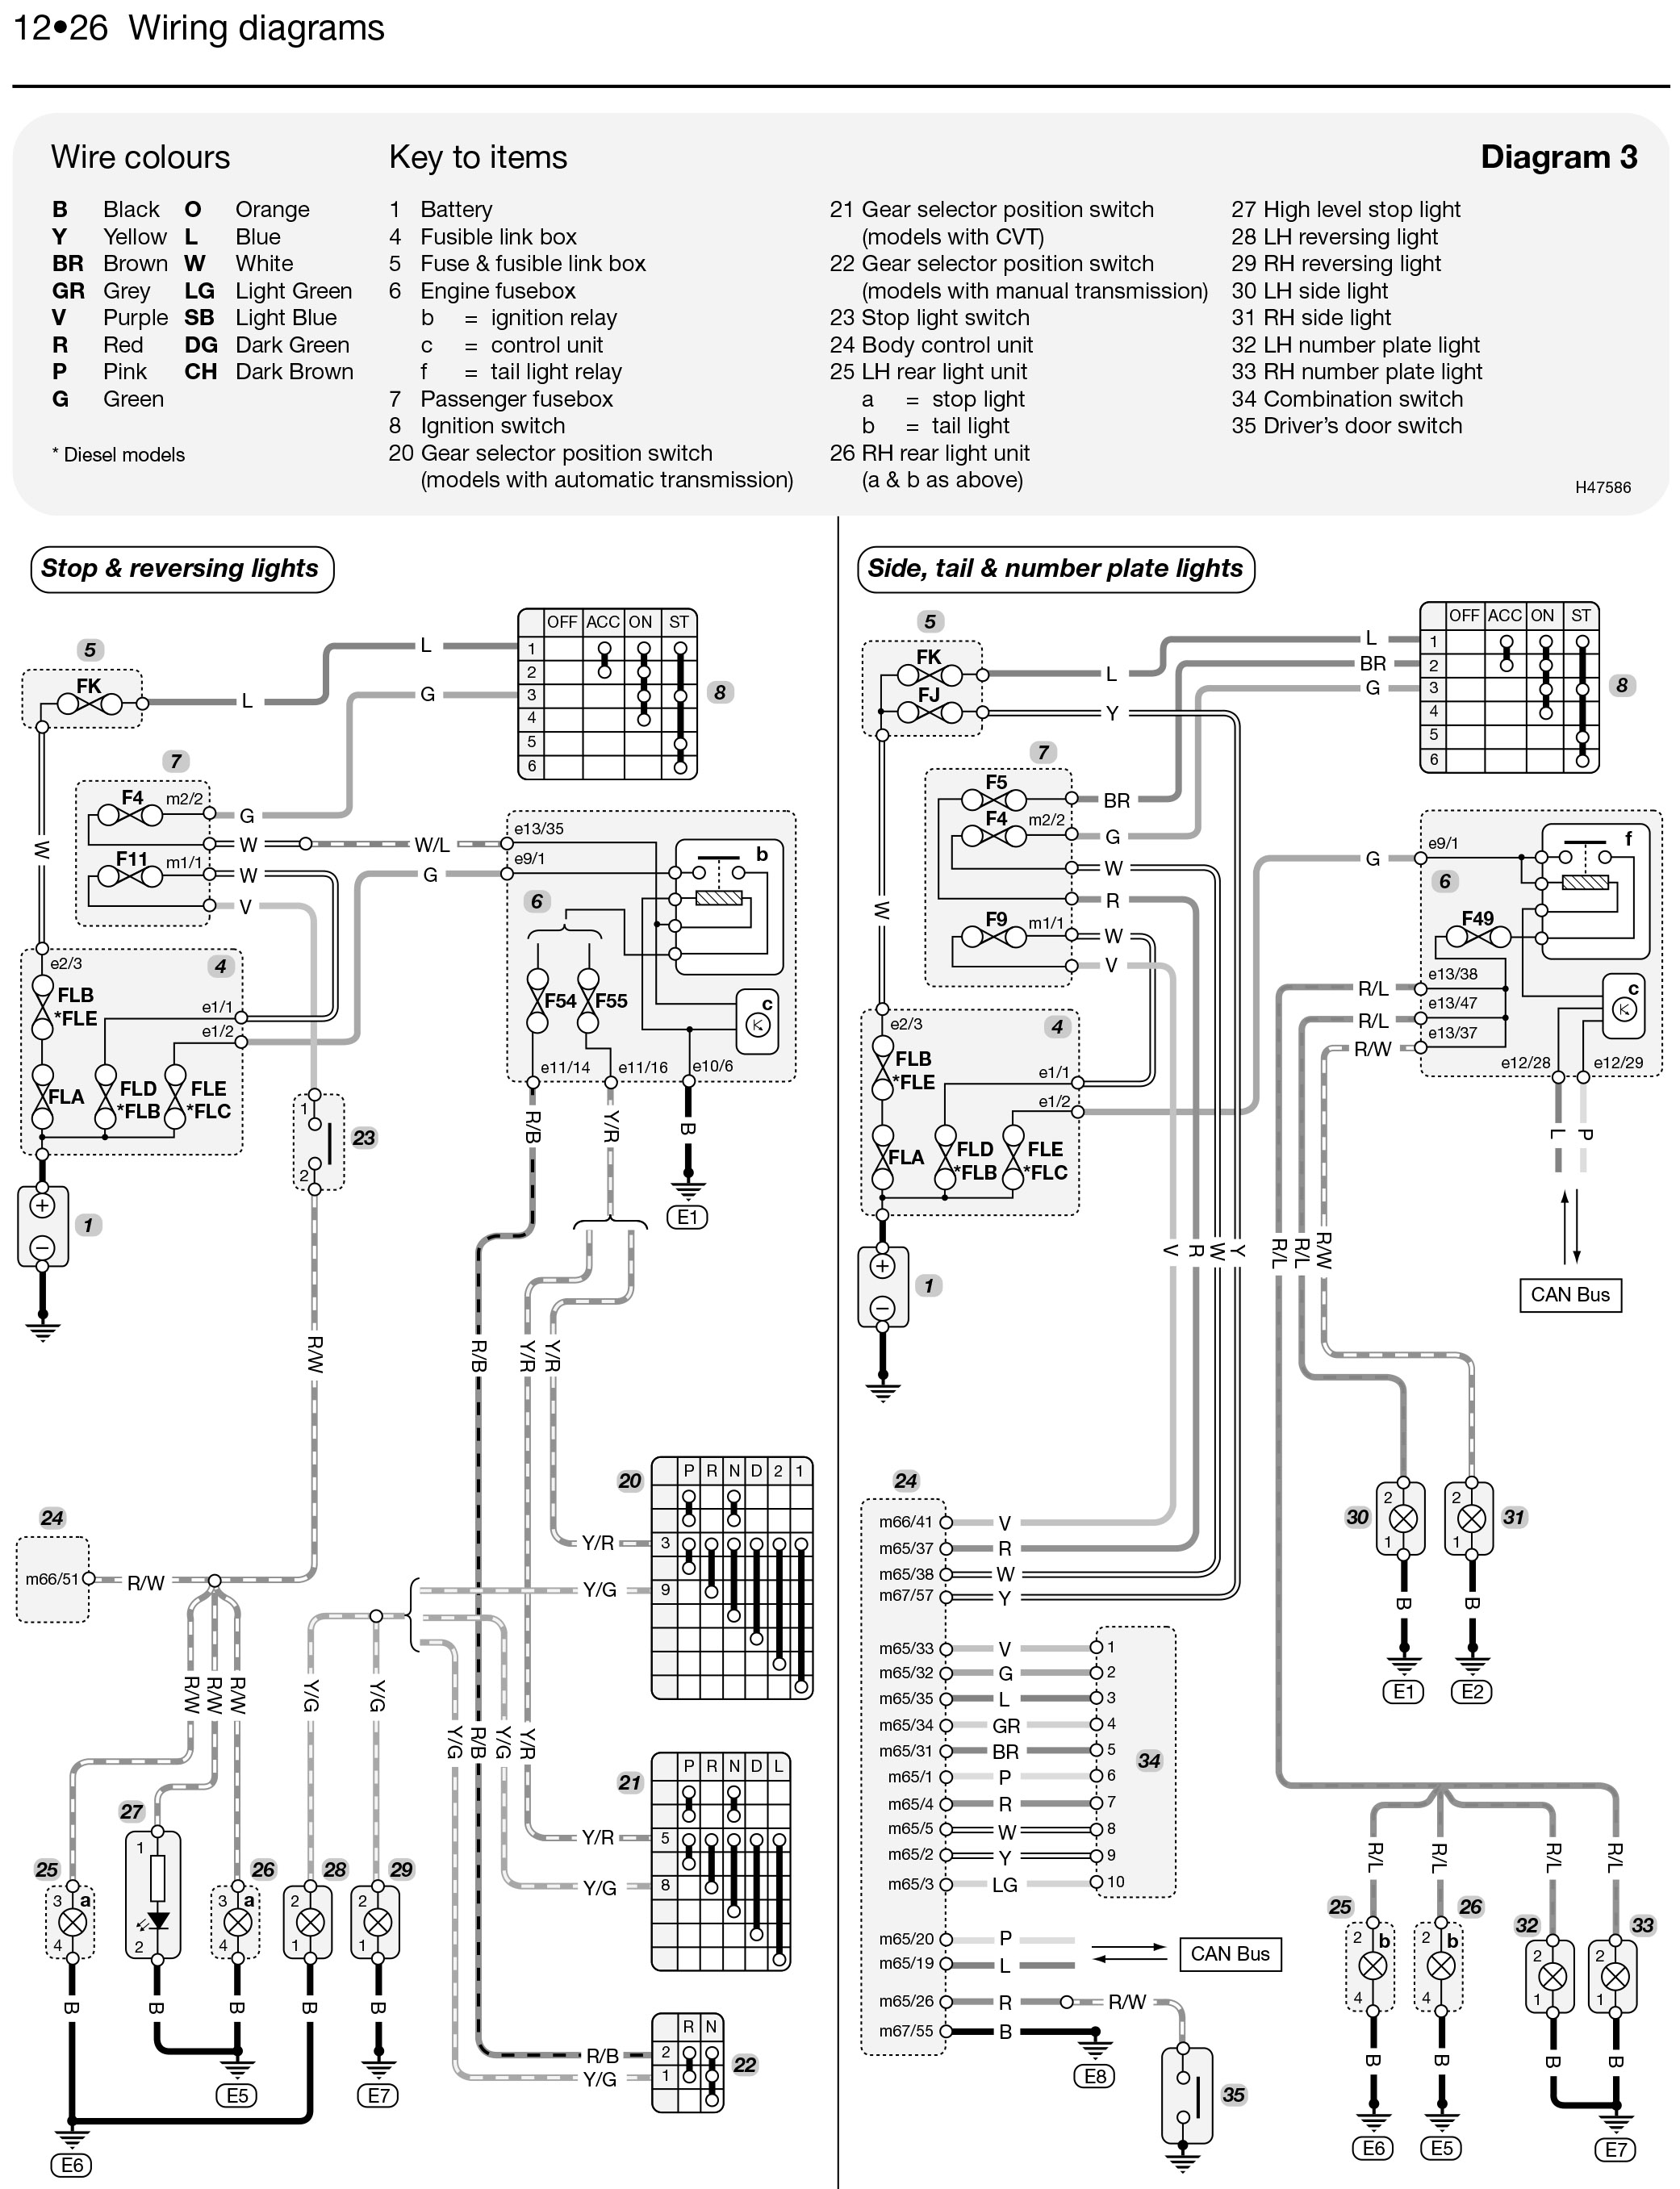 Nissan An Wiring Diagram And Body Electrical Parts Schematic Pdf Diagrams Rh 29 Koch Foerderbandtrommeln De